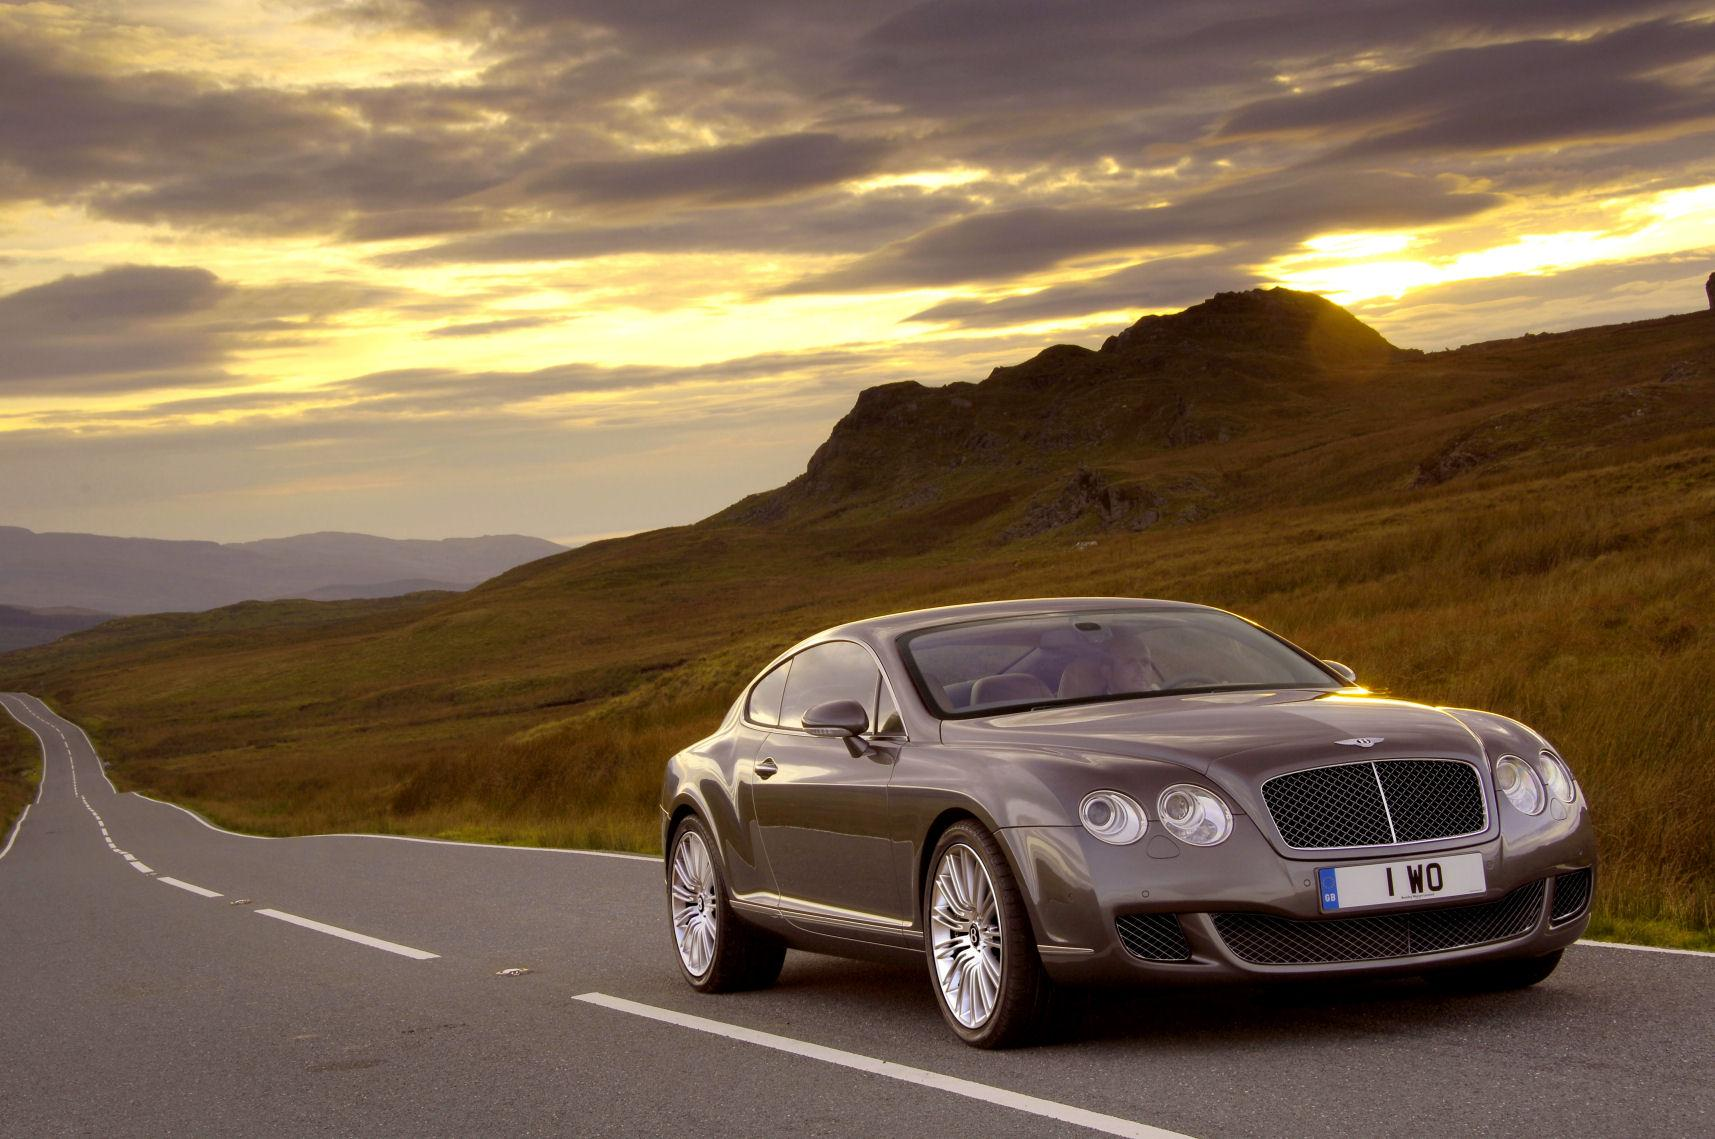 2009 Bentley Continental Gt Speed #21